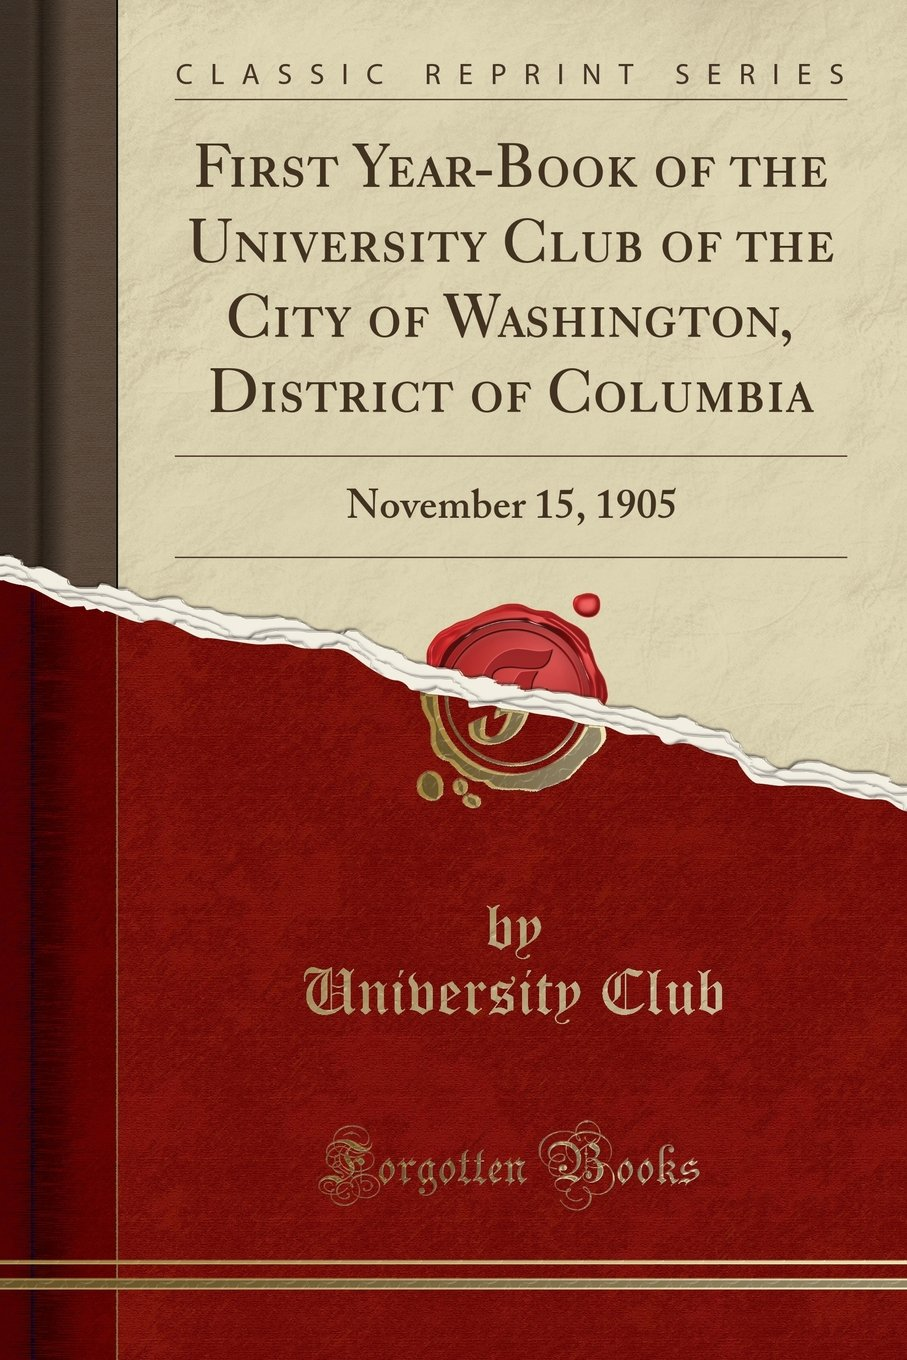 First Year-Book of the University Club of the City of Washington, District of Columbia: November 15, 1905 (Classic Reprint) pdf epub